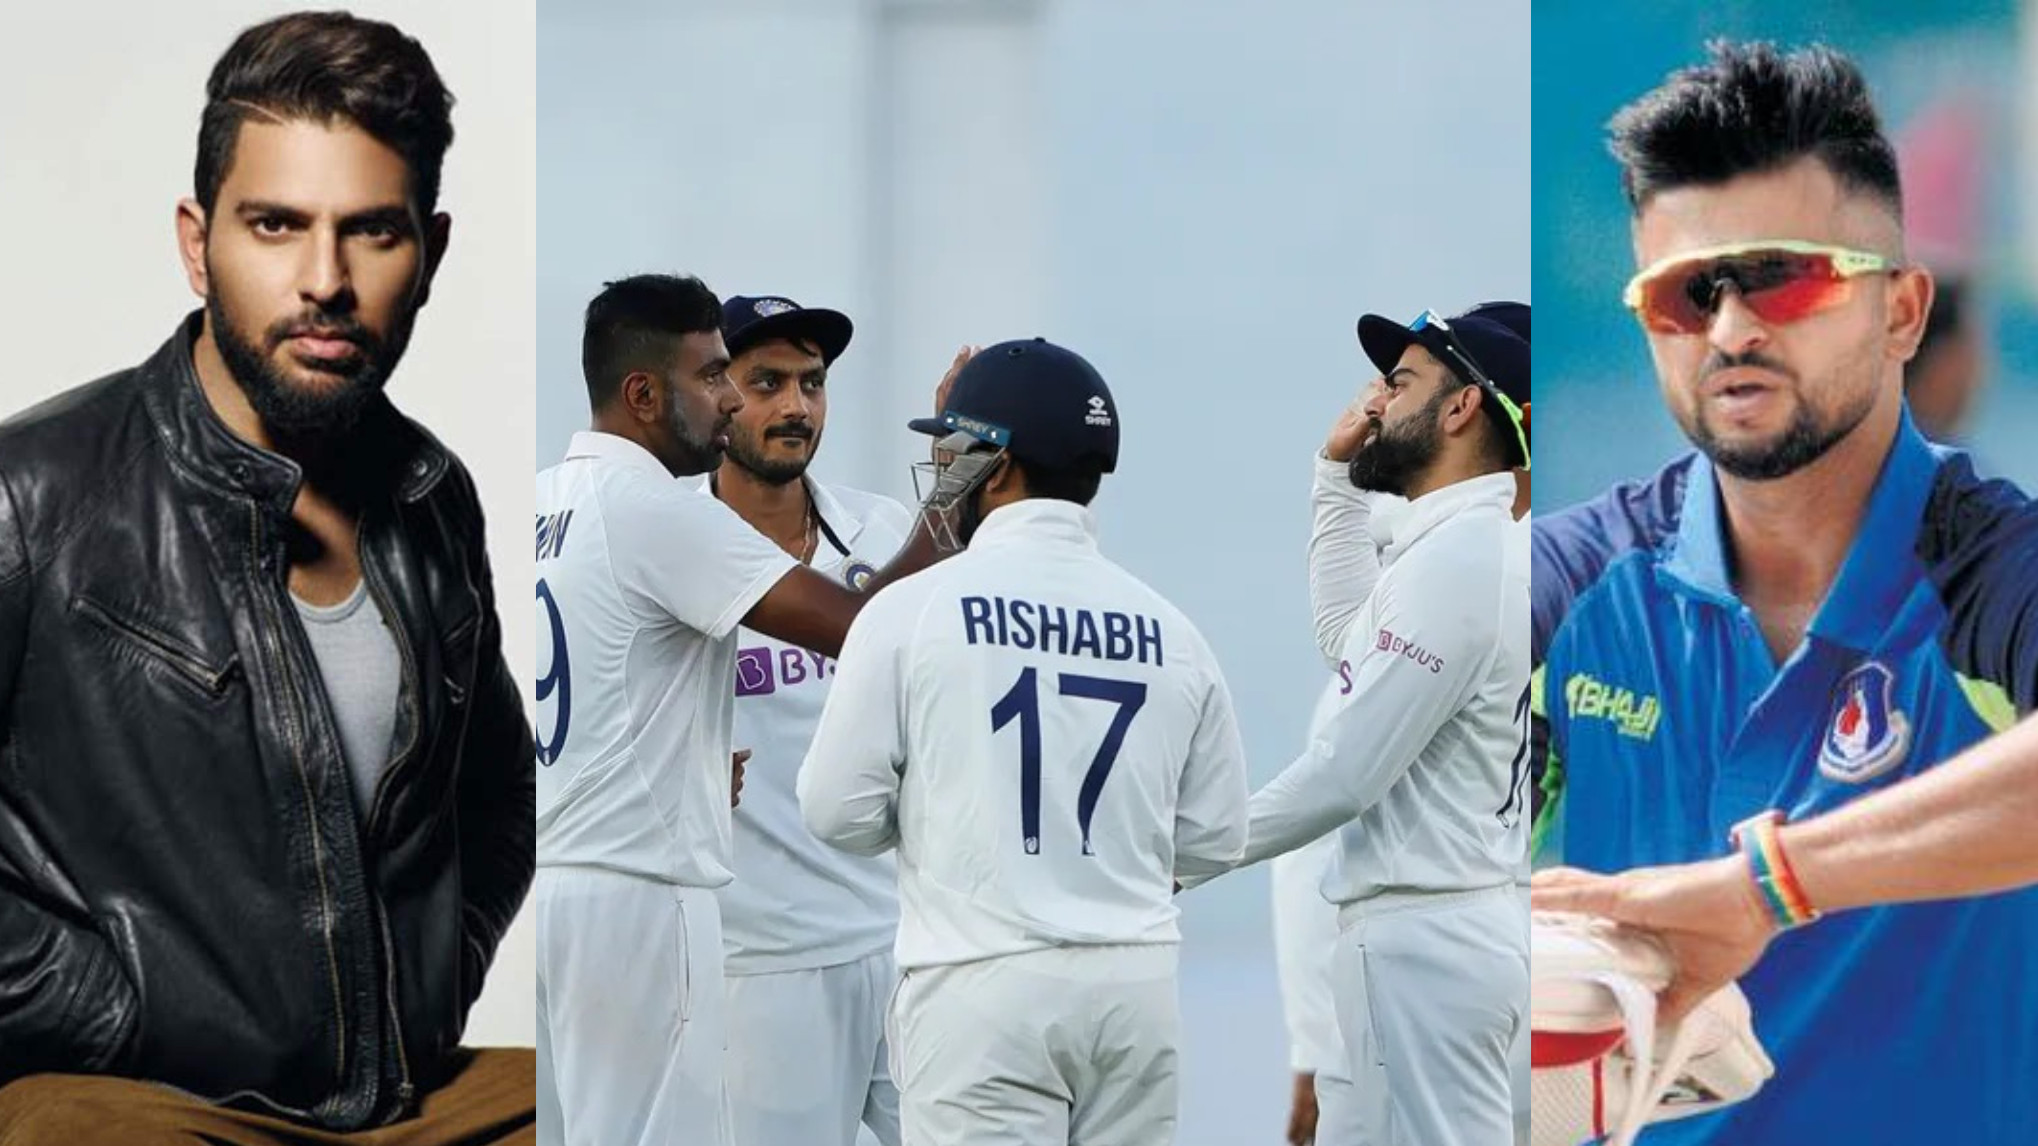 IND v ENG 2021: Cricket fraternity reacts as India wins 3rd Test by 10 wickets inside 2 days; Akshar picks 11